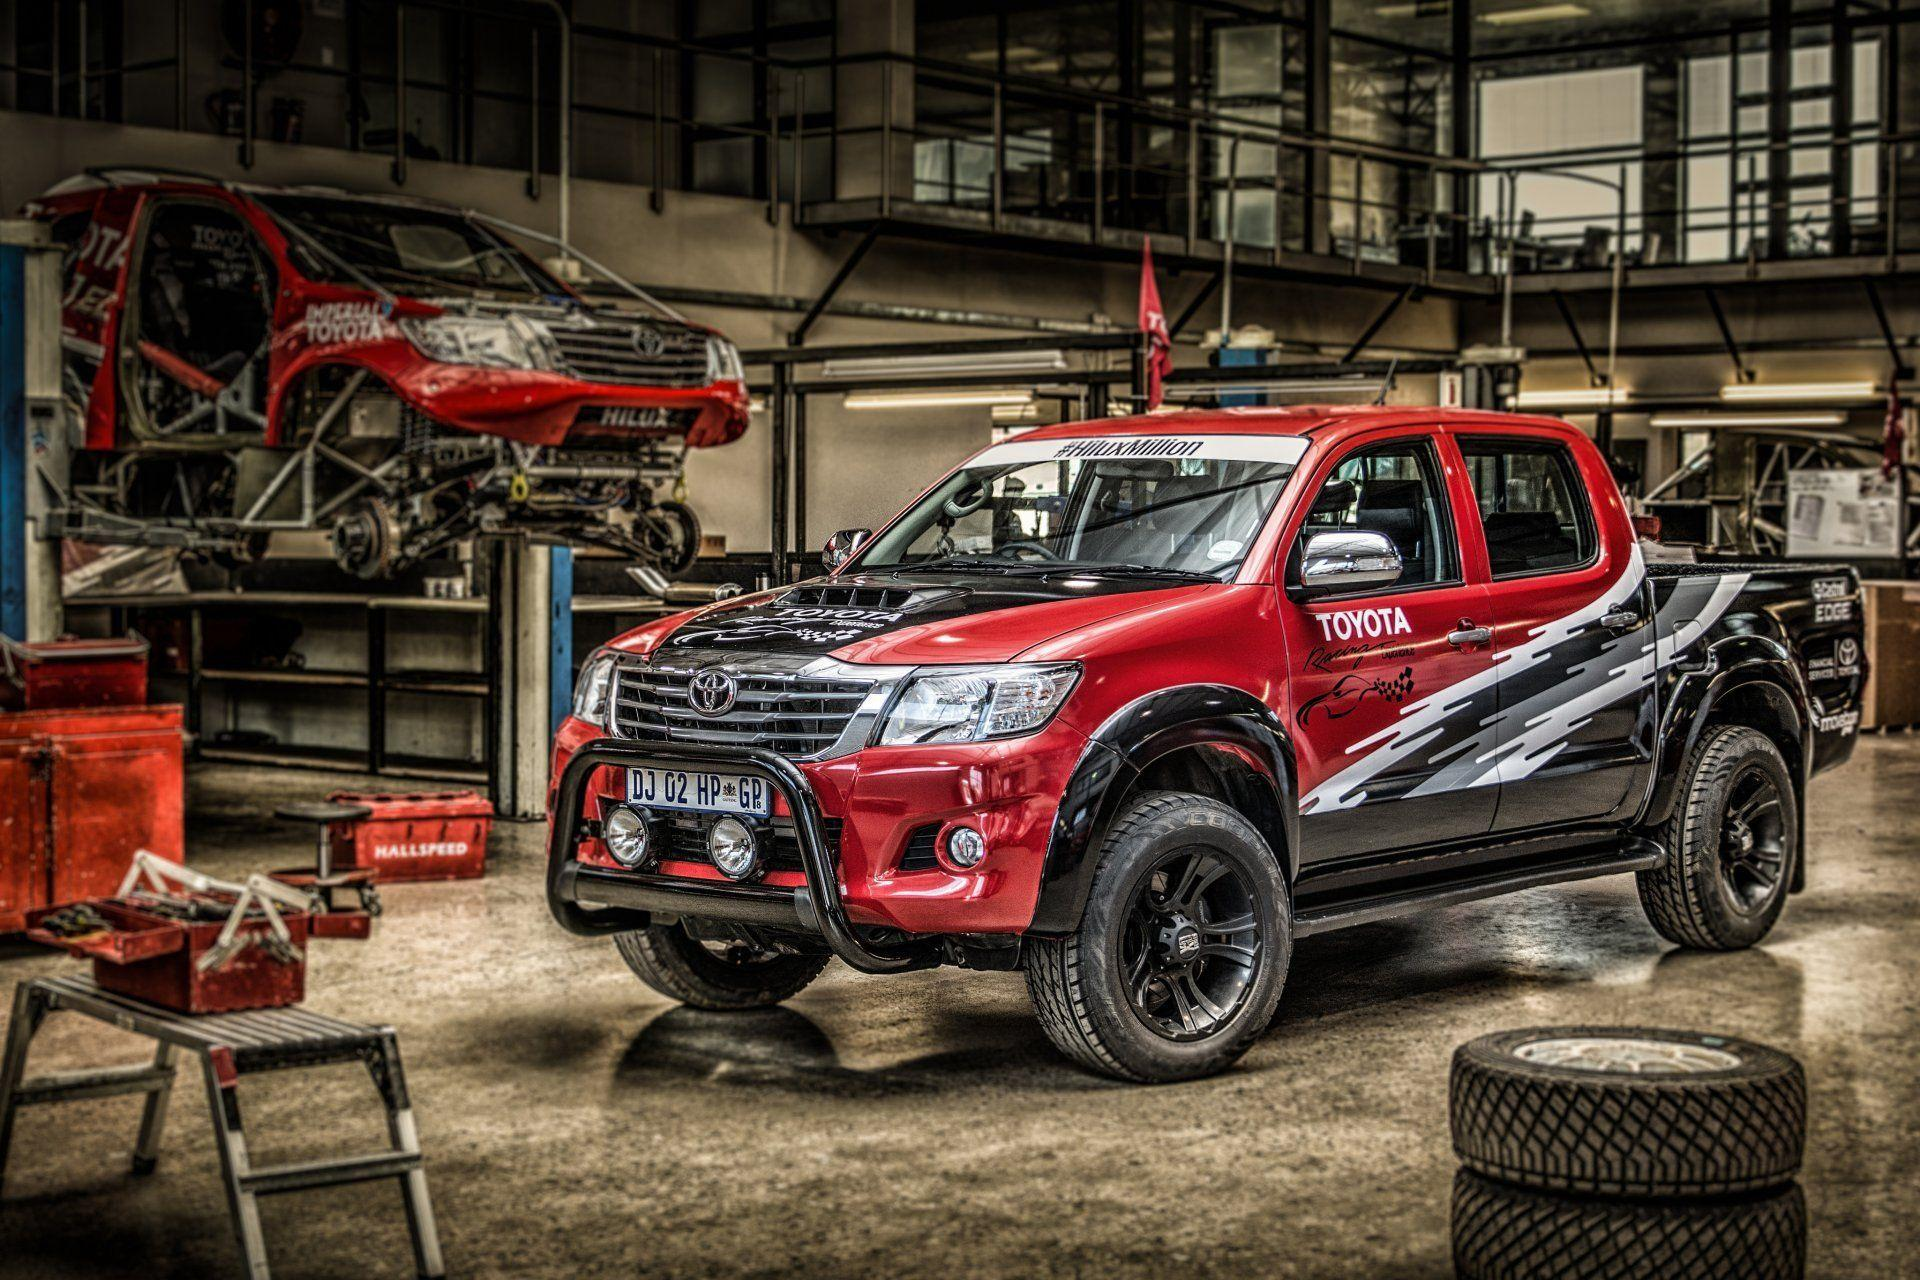 2015 toyota hilux toyota hilux truck HD wallpapers